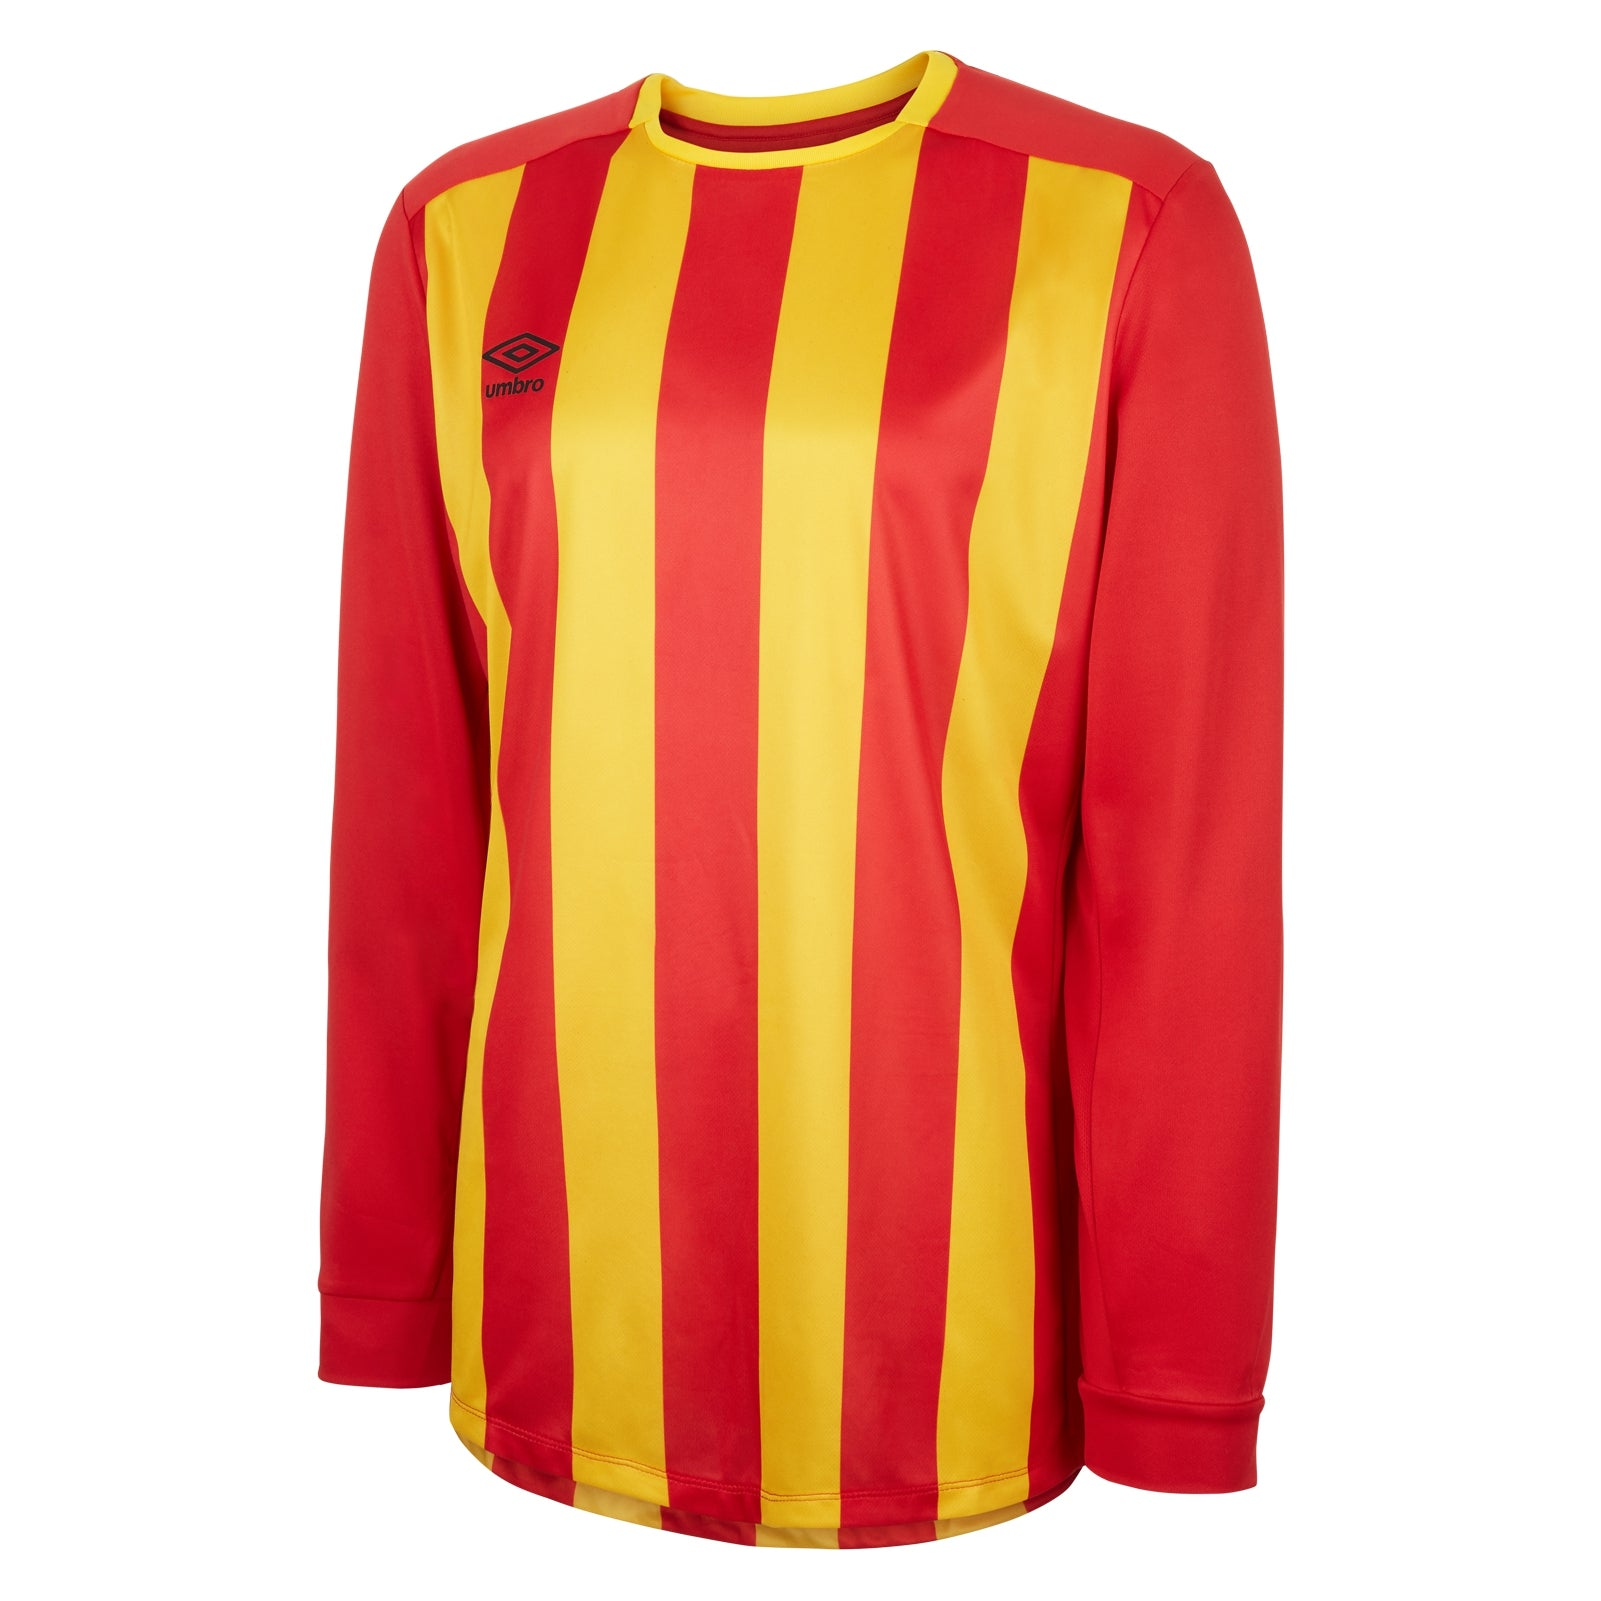 Umbro Milan jersey in long sleeve with vermillion (red) and SV Yellow stripes